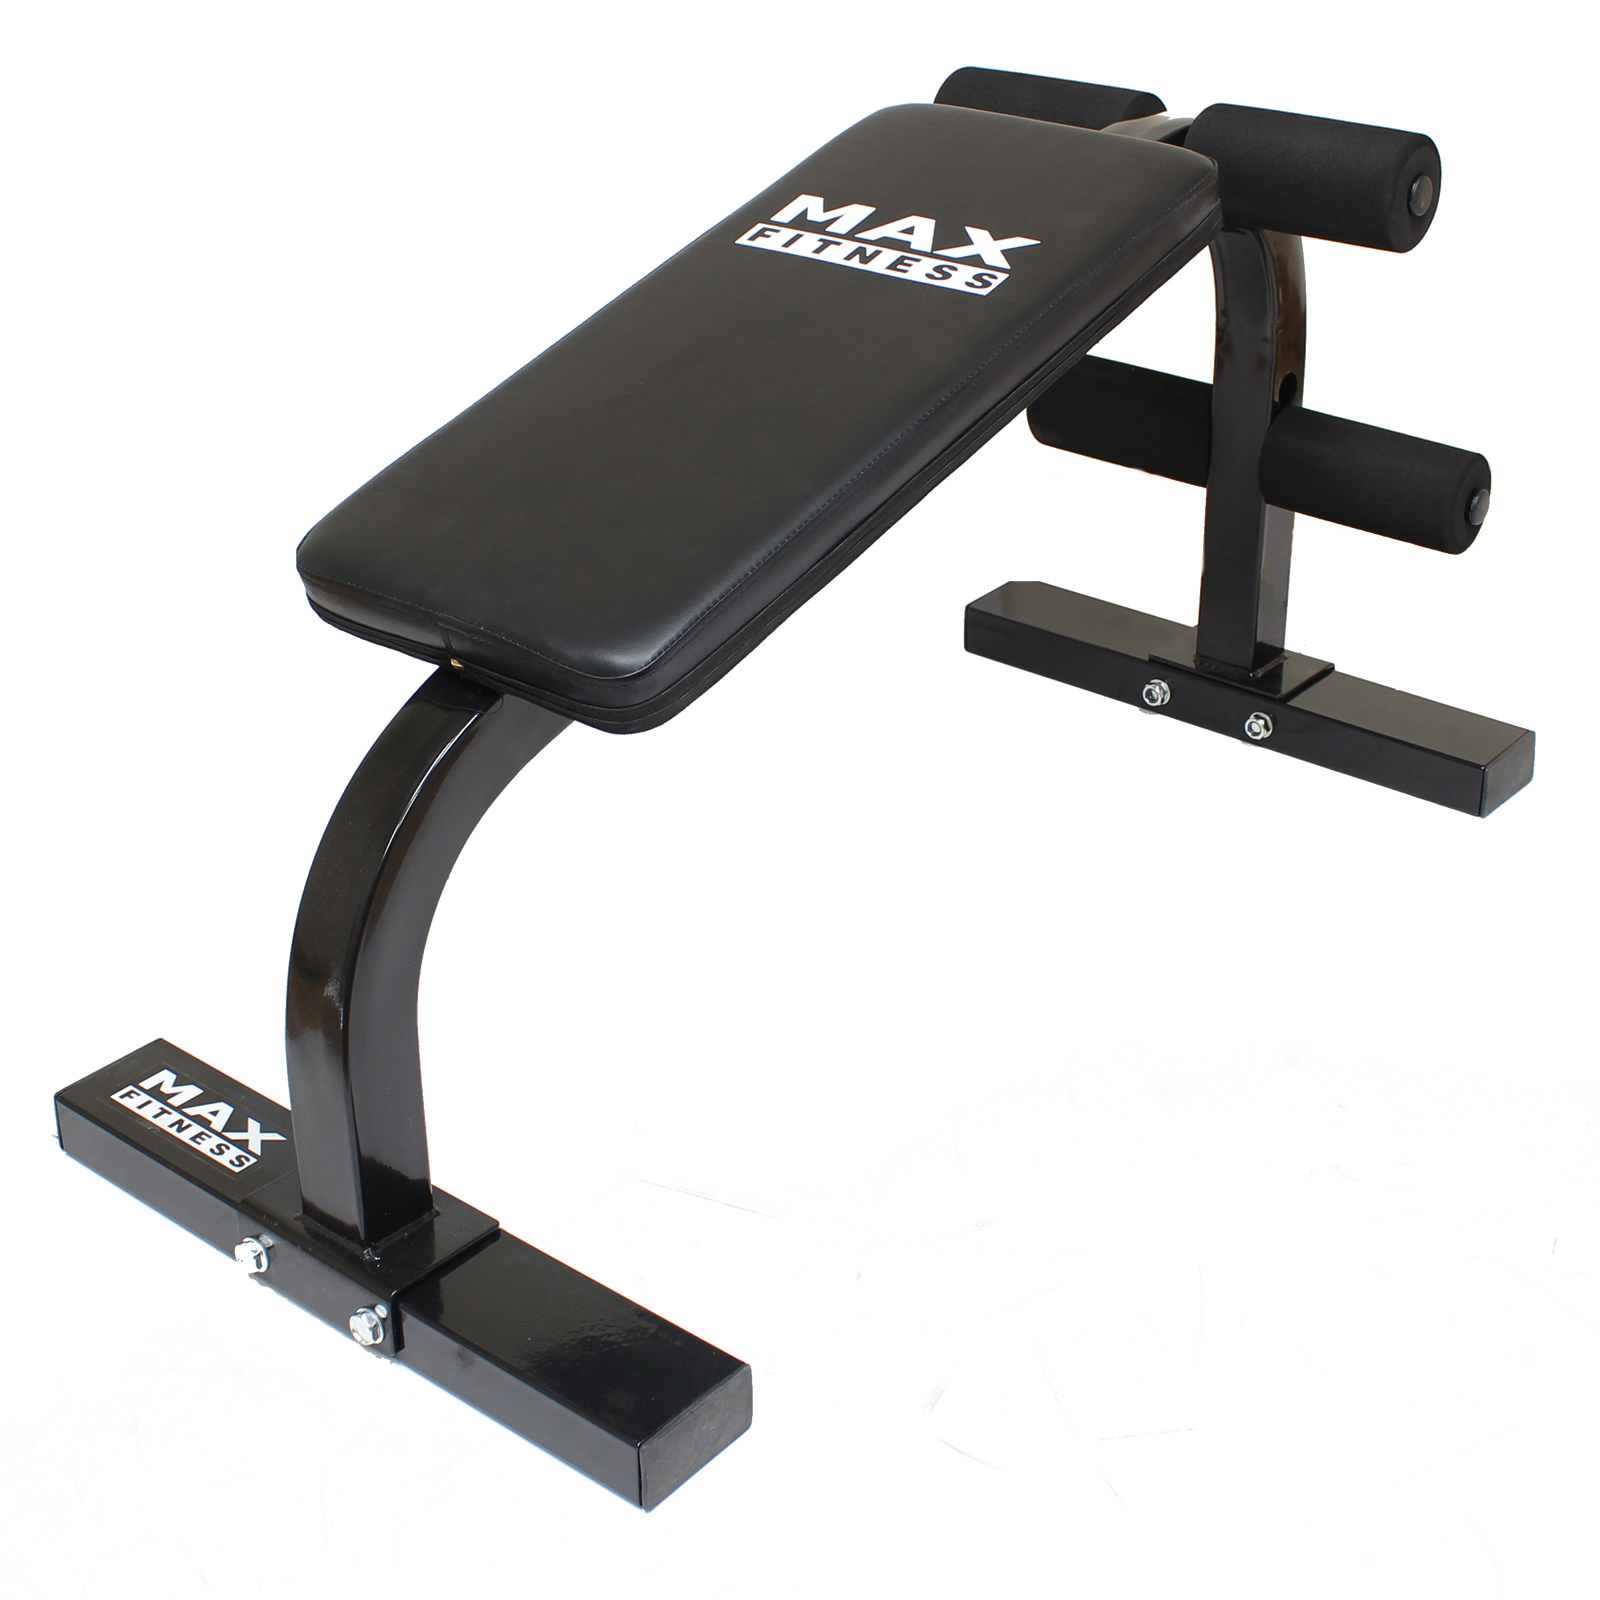 Max Fitness Sit Up Ab Bench Home Gym Workout Exercise